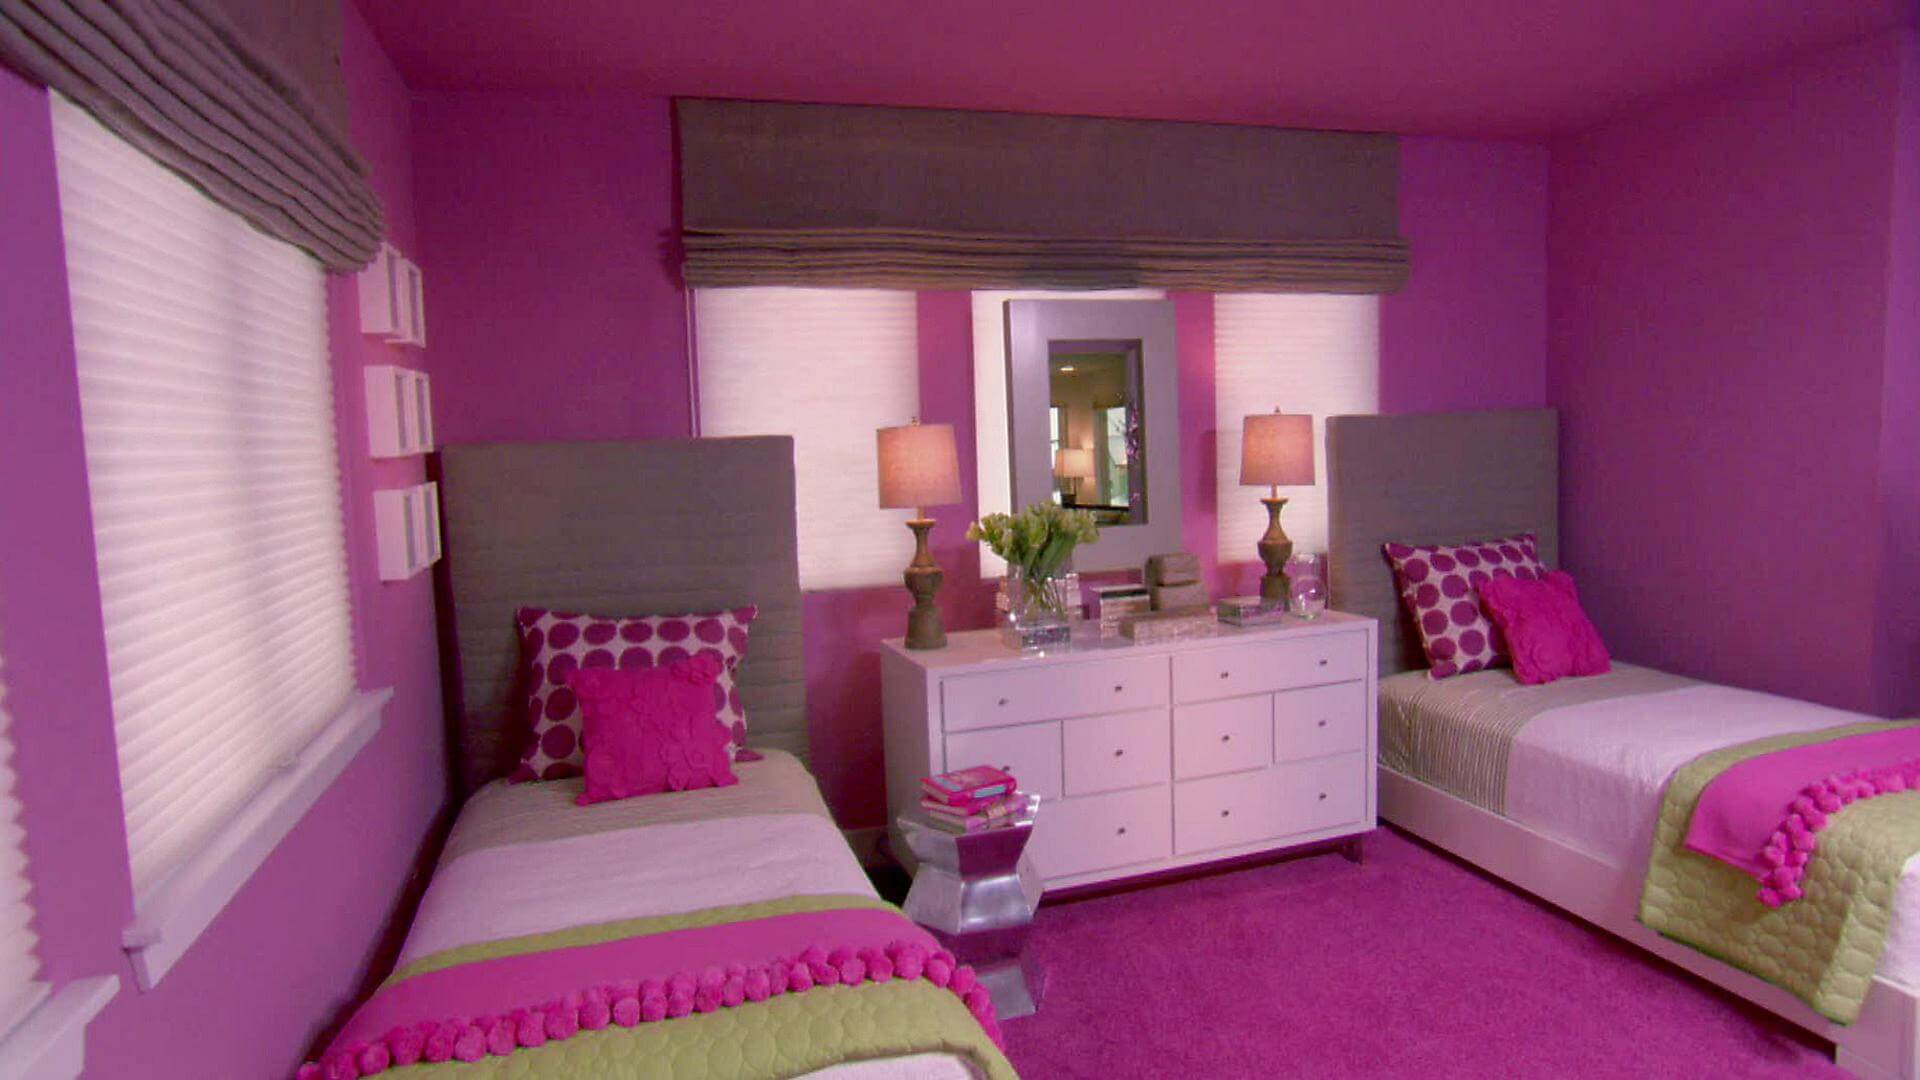 paint colors for bedrooms 2012 το παιδικό δωμάτιο της σοφίας all4mama 19377